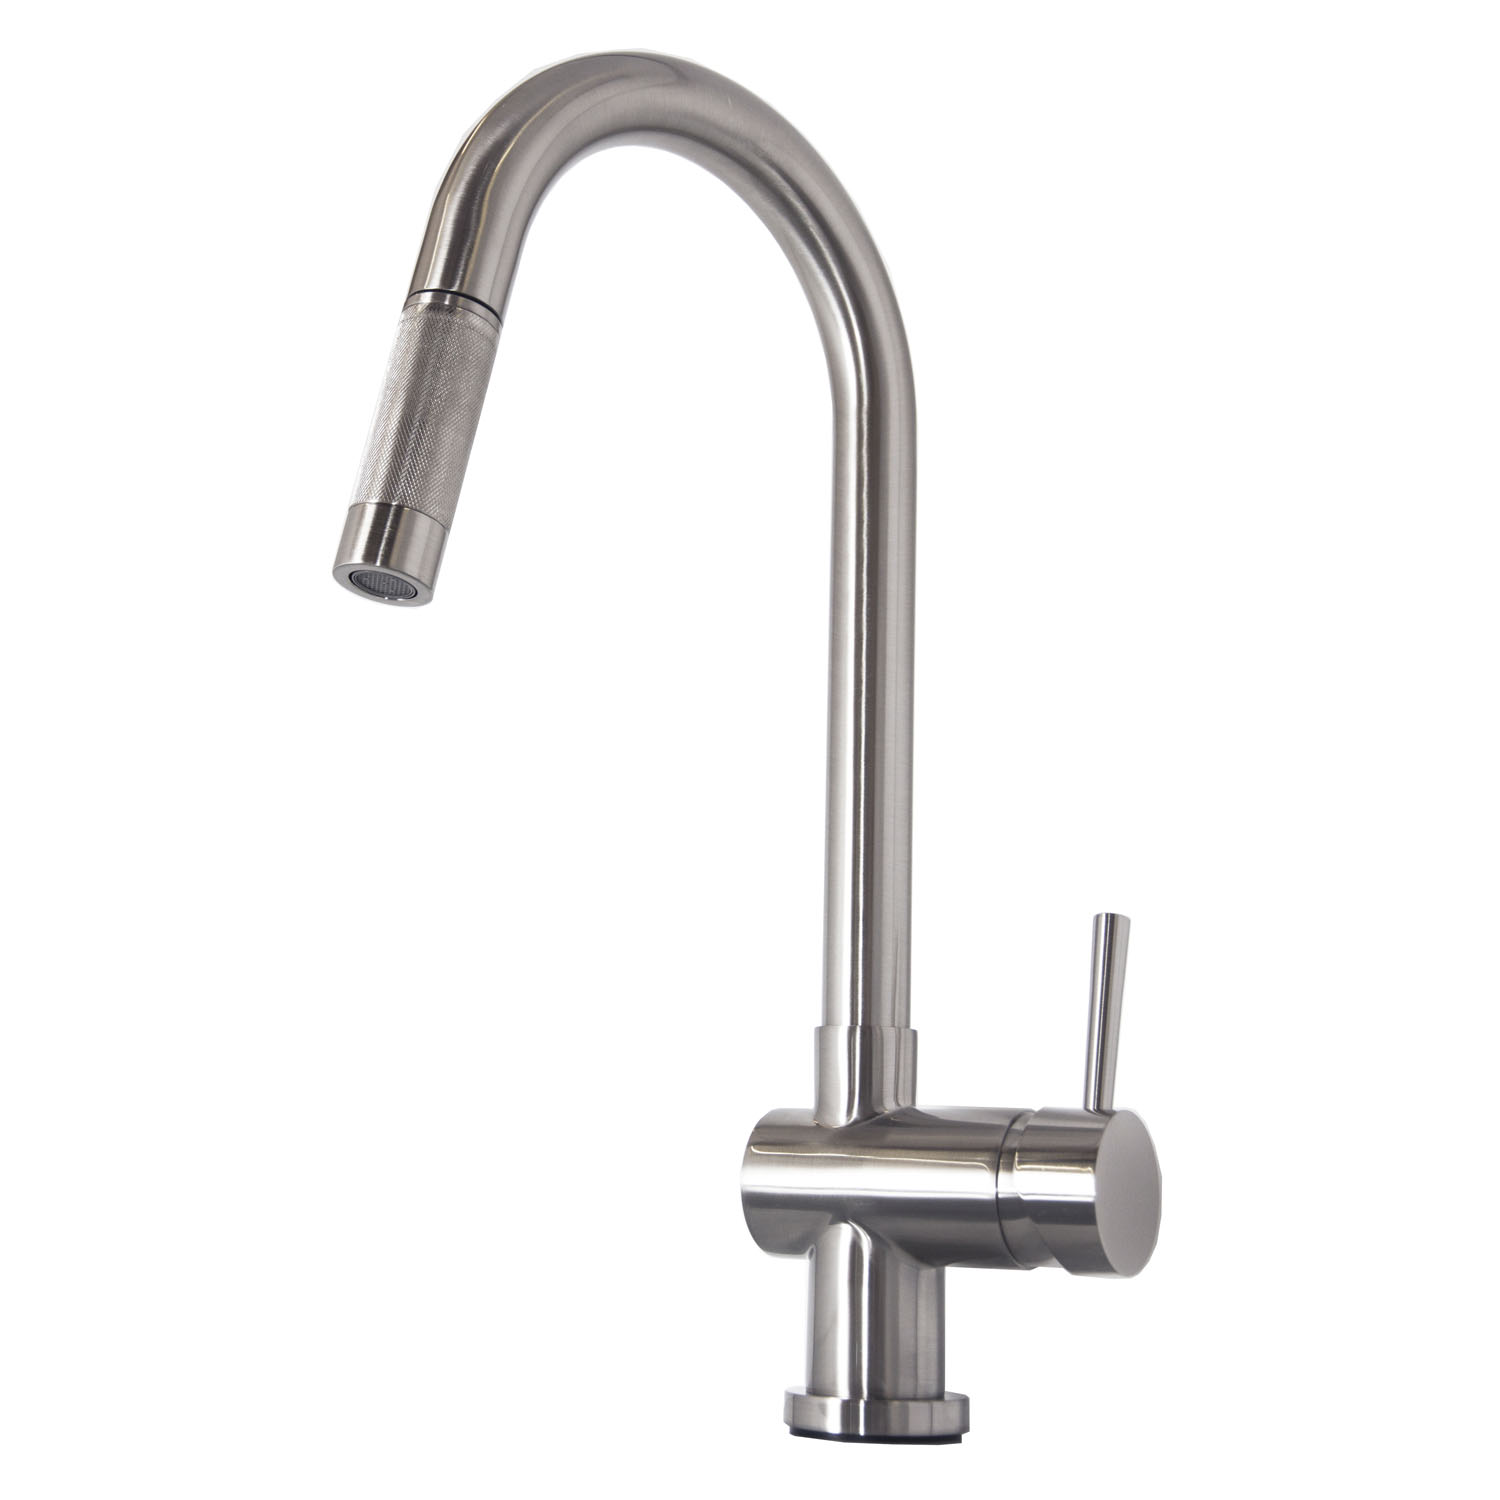 Huya 1002 Single Hole Kitchen Faucet - PSK-1002 - Kitchen Faucets - Virtu  USA